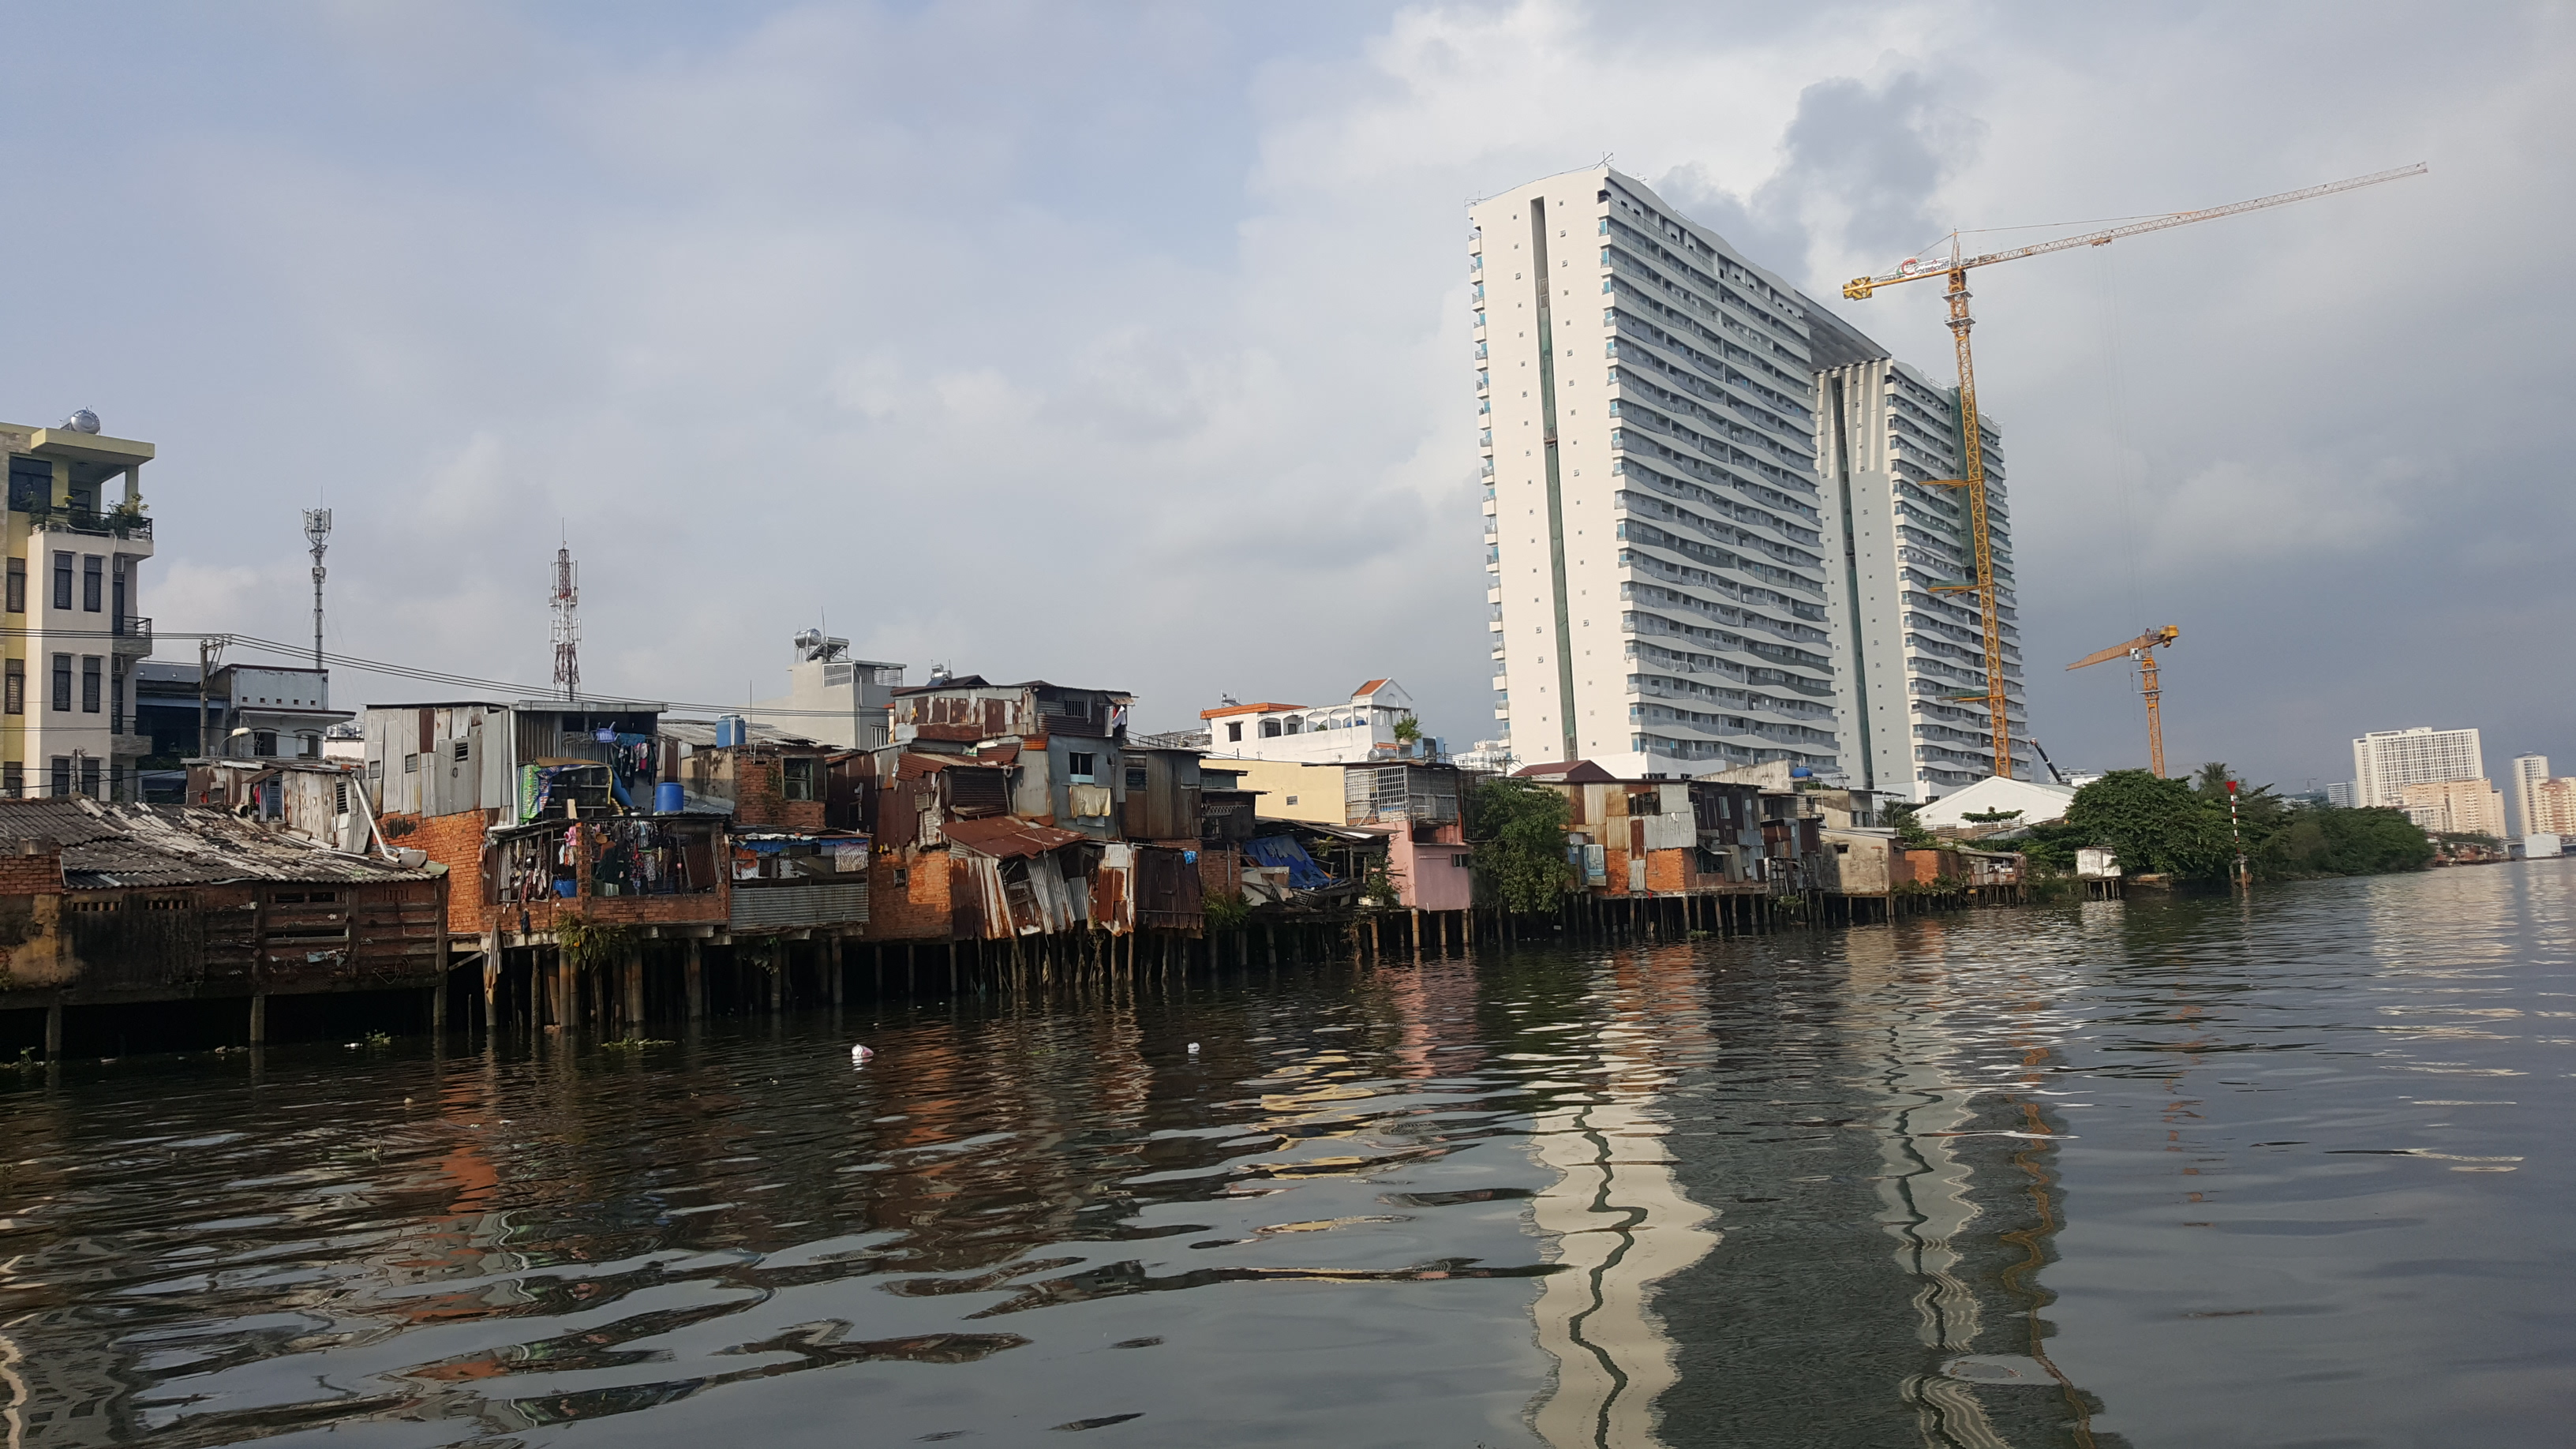 A river view of wooden stilt houses, very run down, with luxury flats under construction in the background